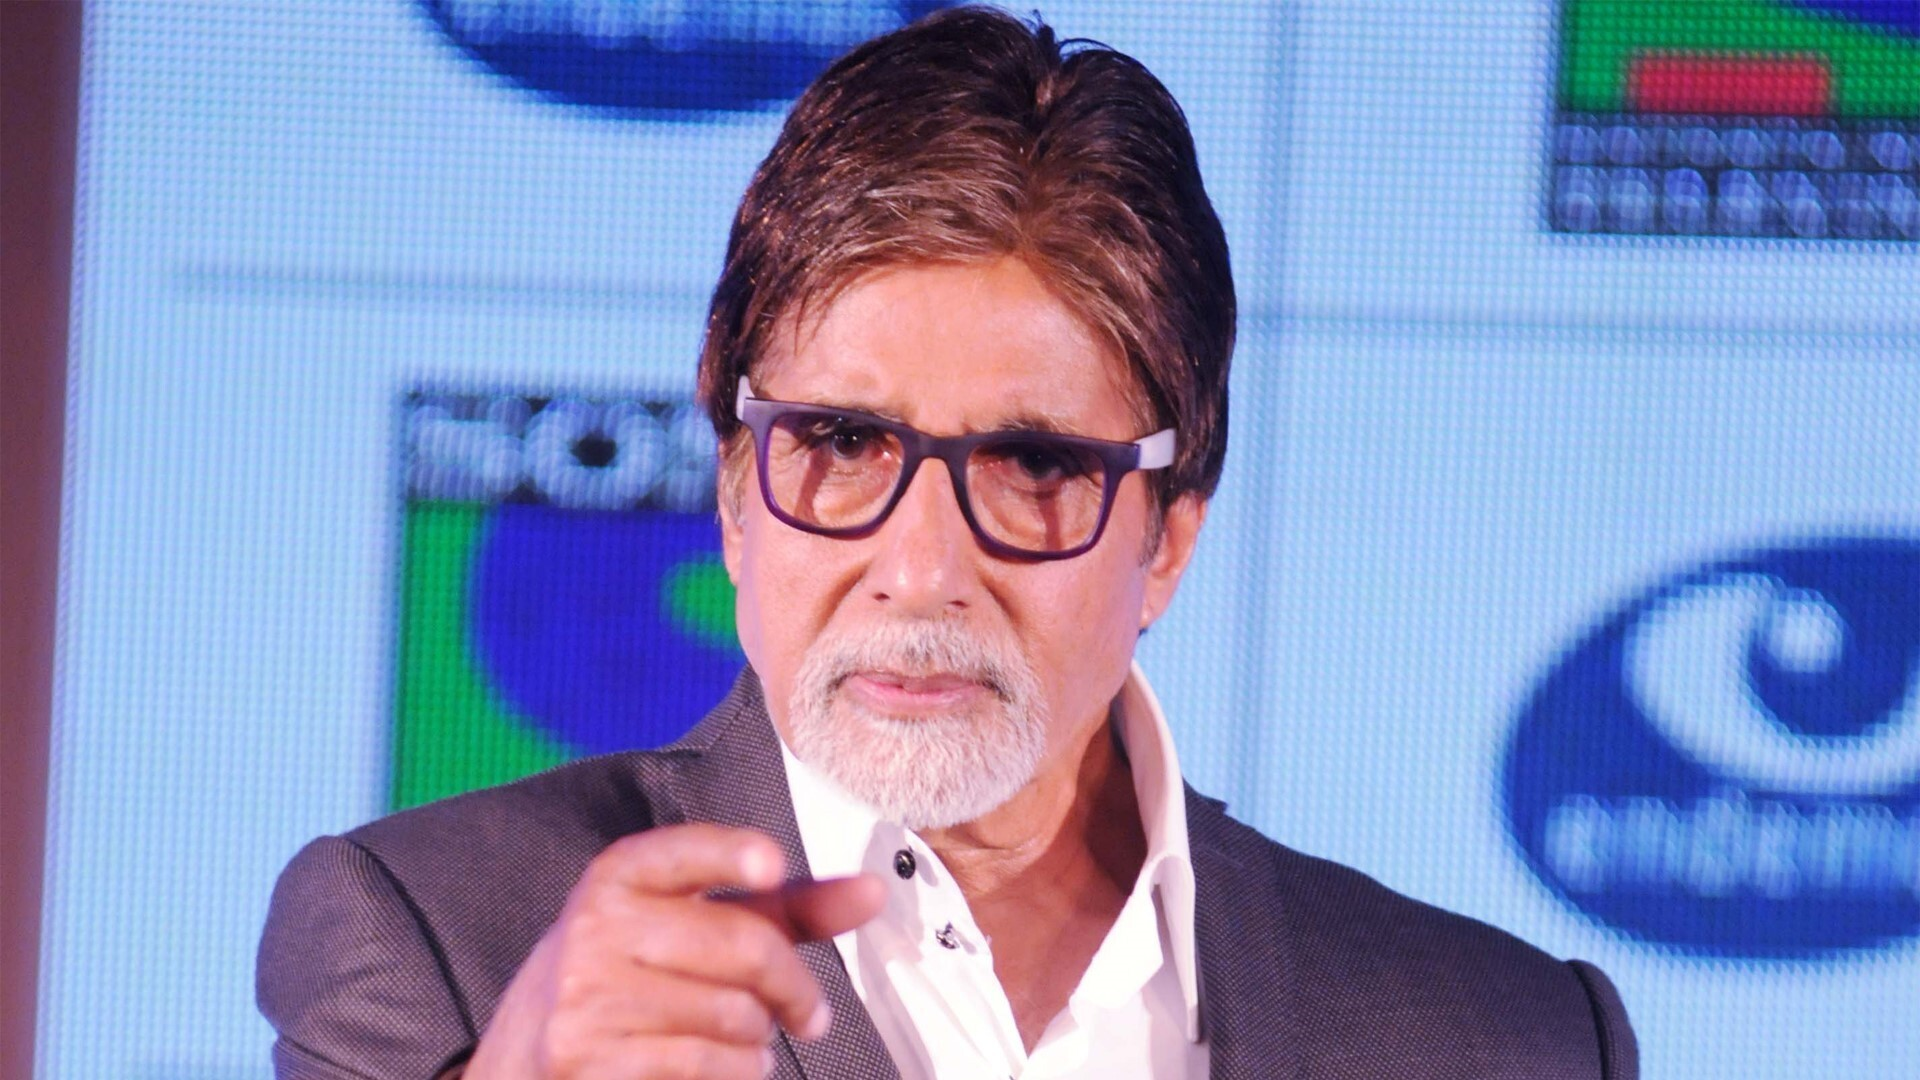 famous bollywood actor amitabh bachchan hd wallpaper | hd wallpapers